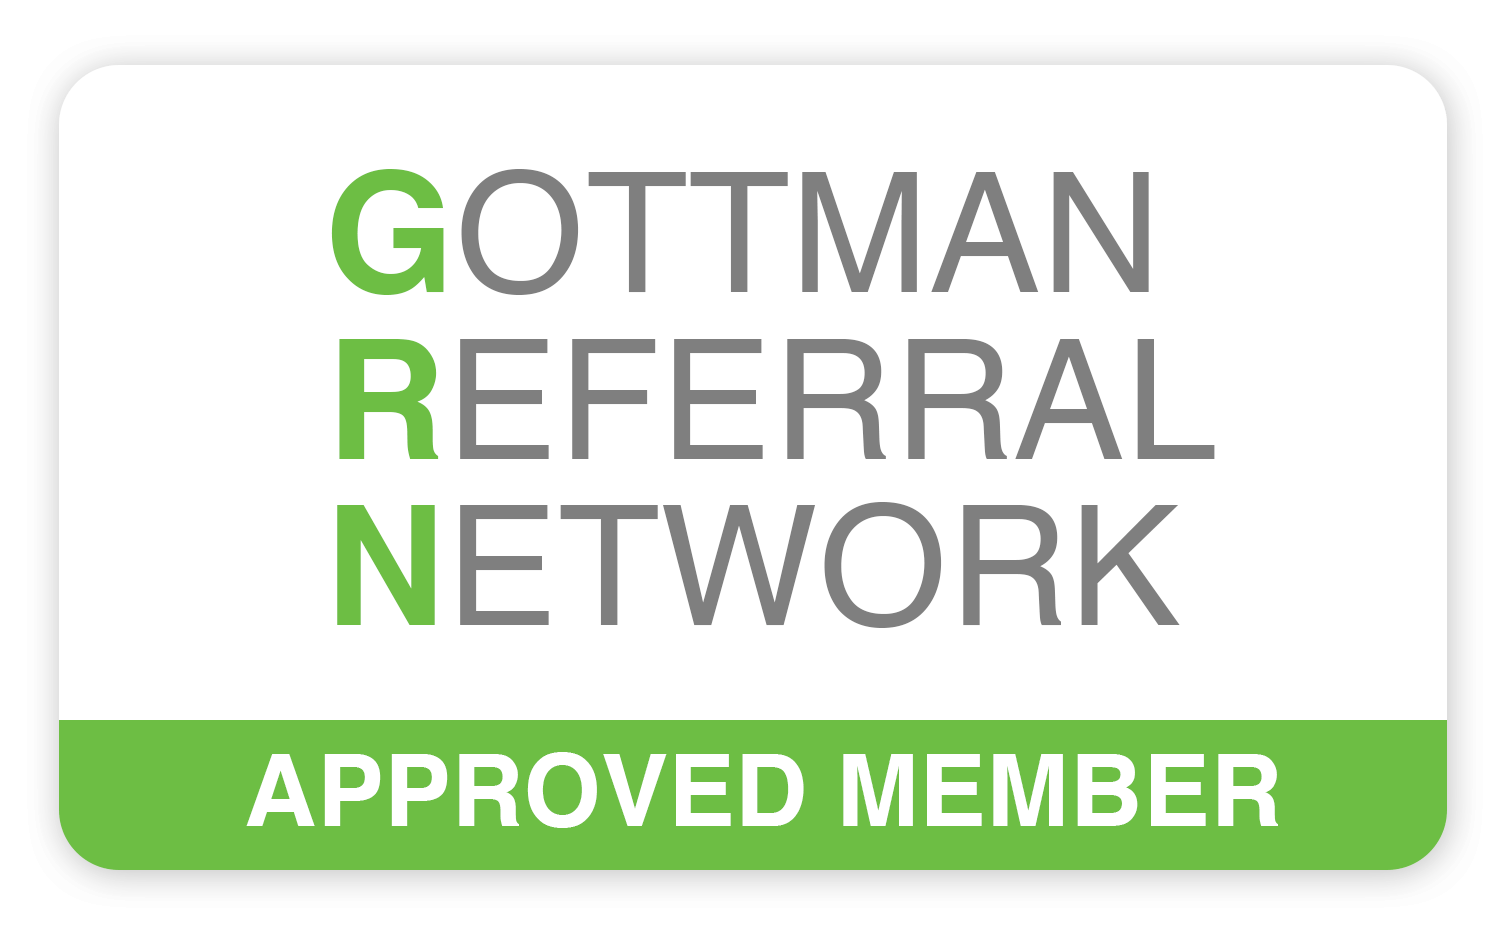 Joe Dagenhart's profile on the Gottman Referral Network